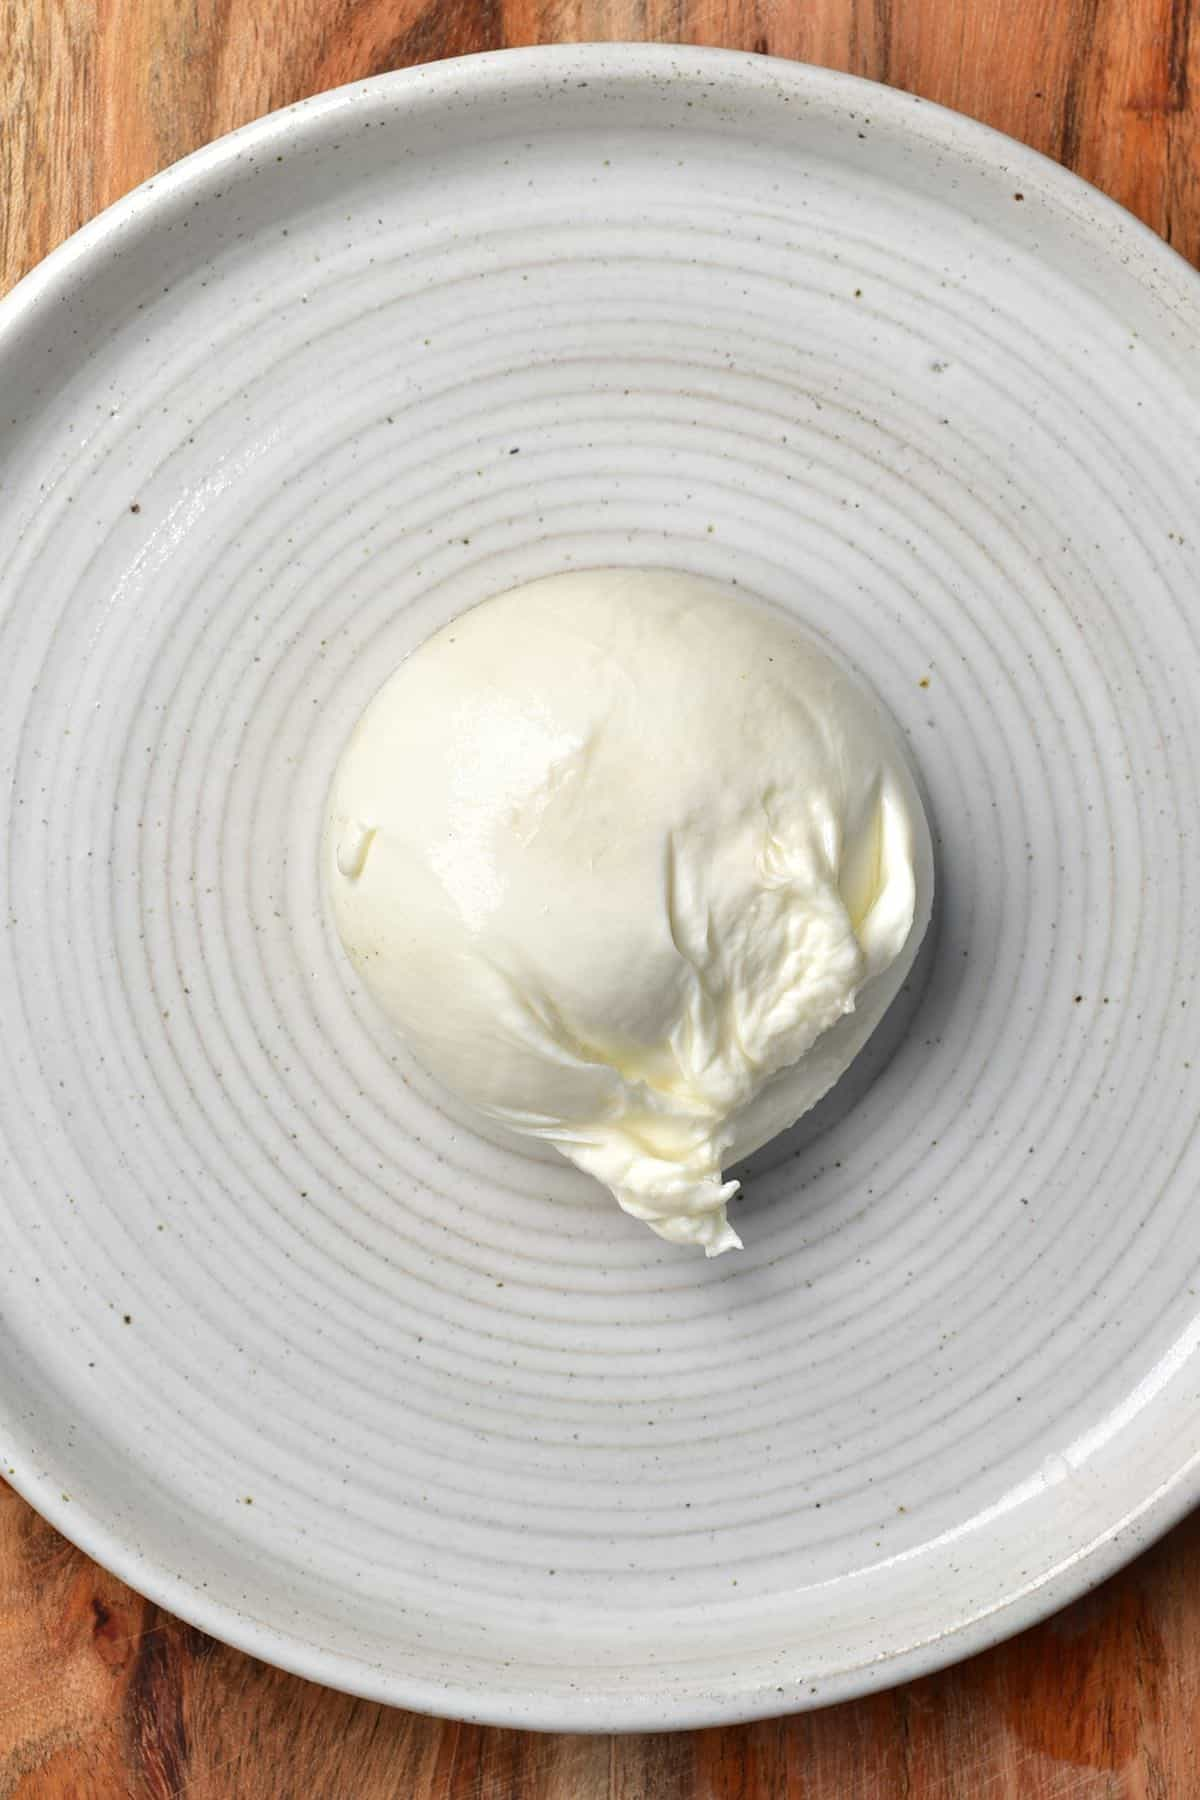 Burrata cheese in a plate